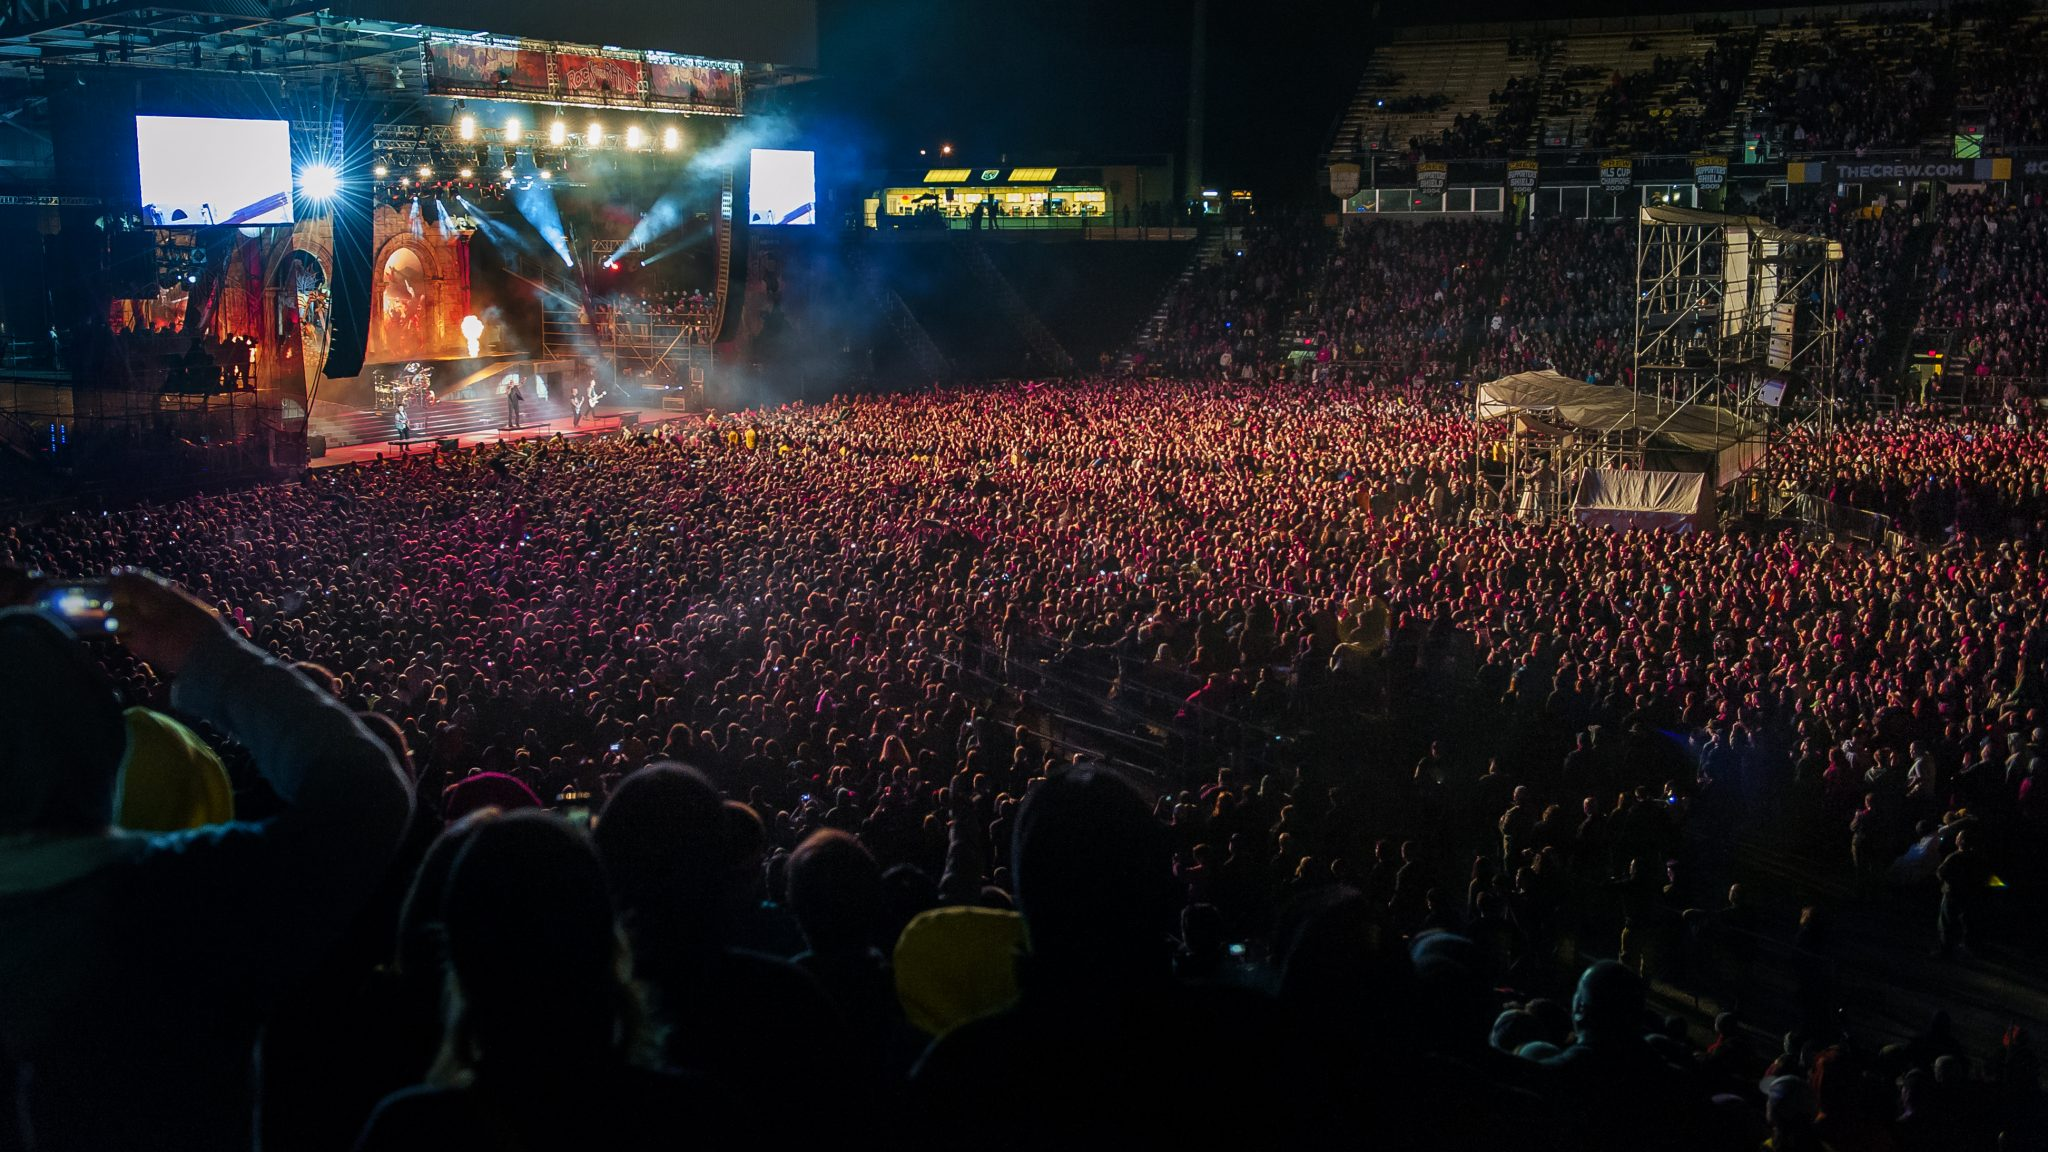 Sold Out Crowd during Avenged Sevenfold at Rock on the Range 2014.